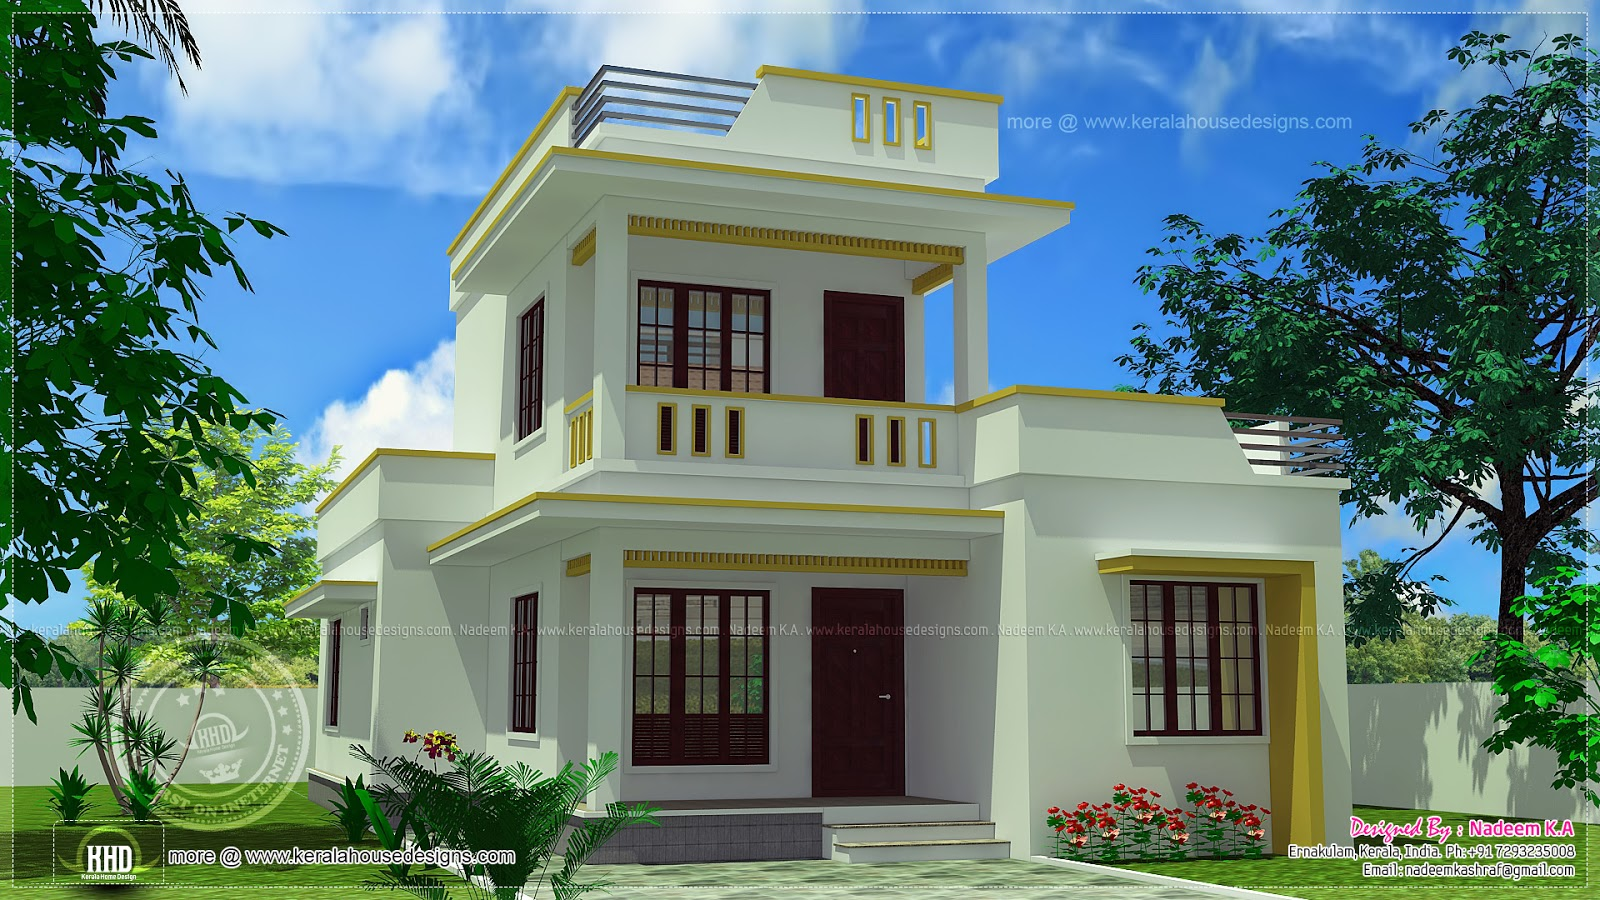 August 2013 kerala home design and floor plans for Simple house design ideas